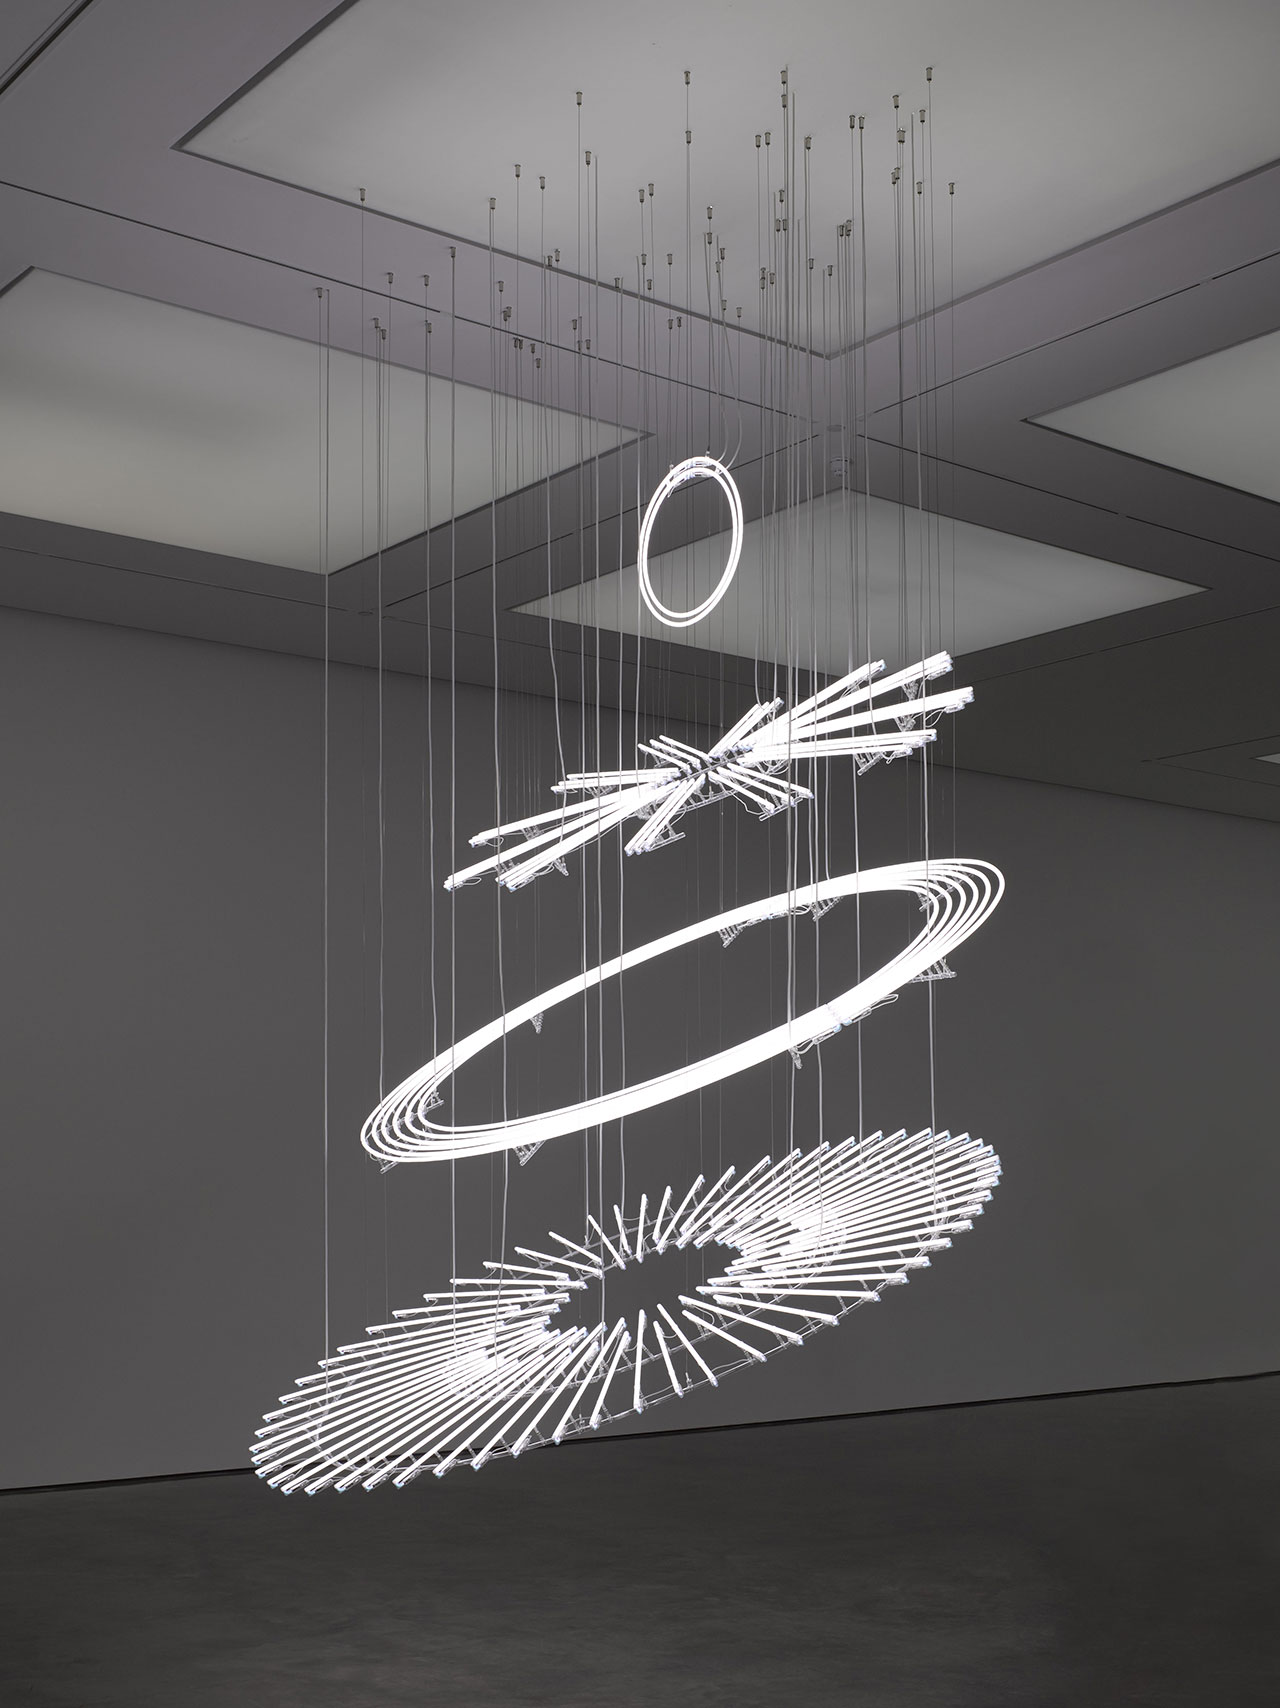 Cerith Wyn Evans, The Illuminating Gas... (after Oculist Witnesses), 2015 © Cerith Wyn Evans. Courtesy White Cube. Photo: George Darrell.